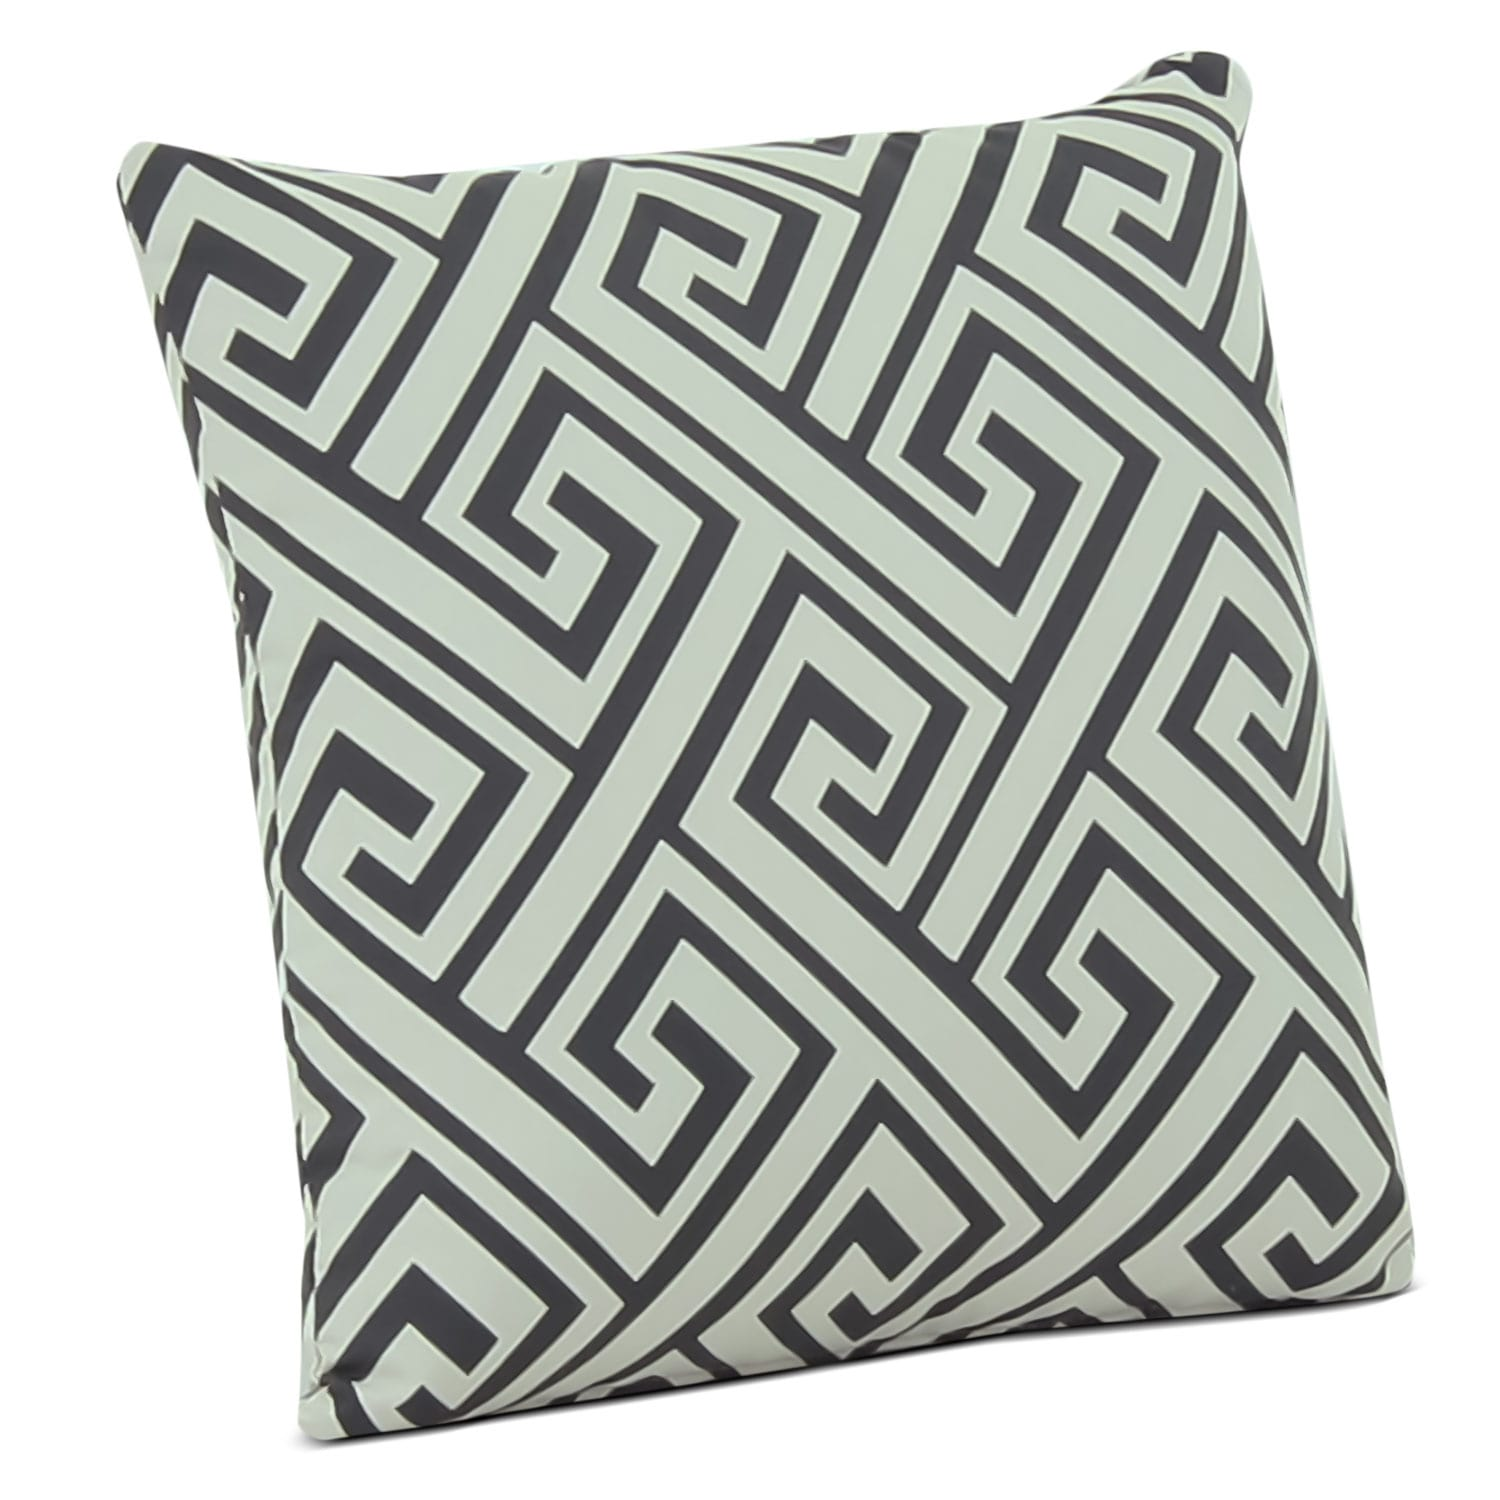 Designed2B Fabric Accent Throw Pillow – Domino